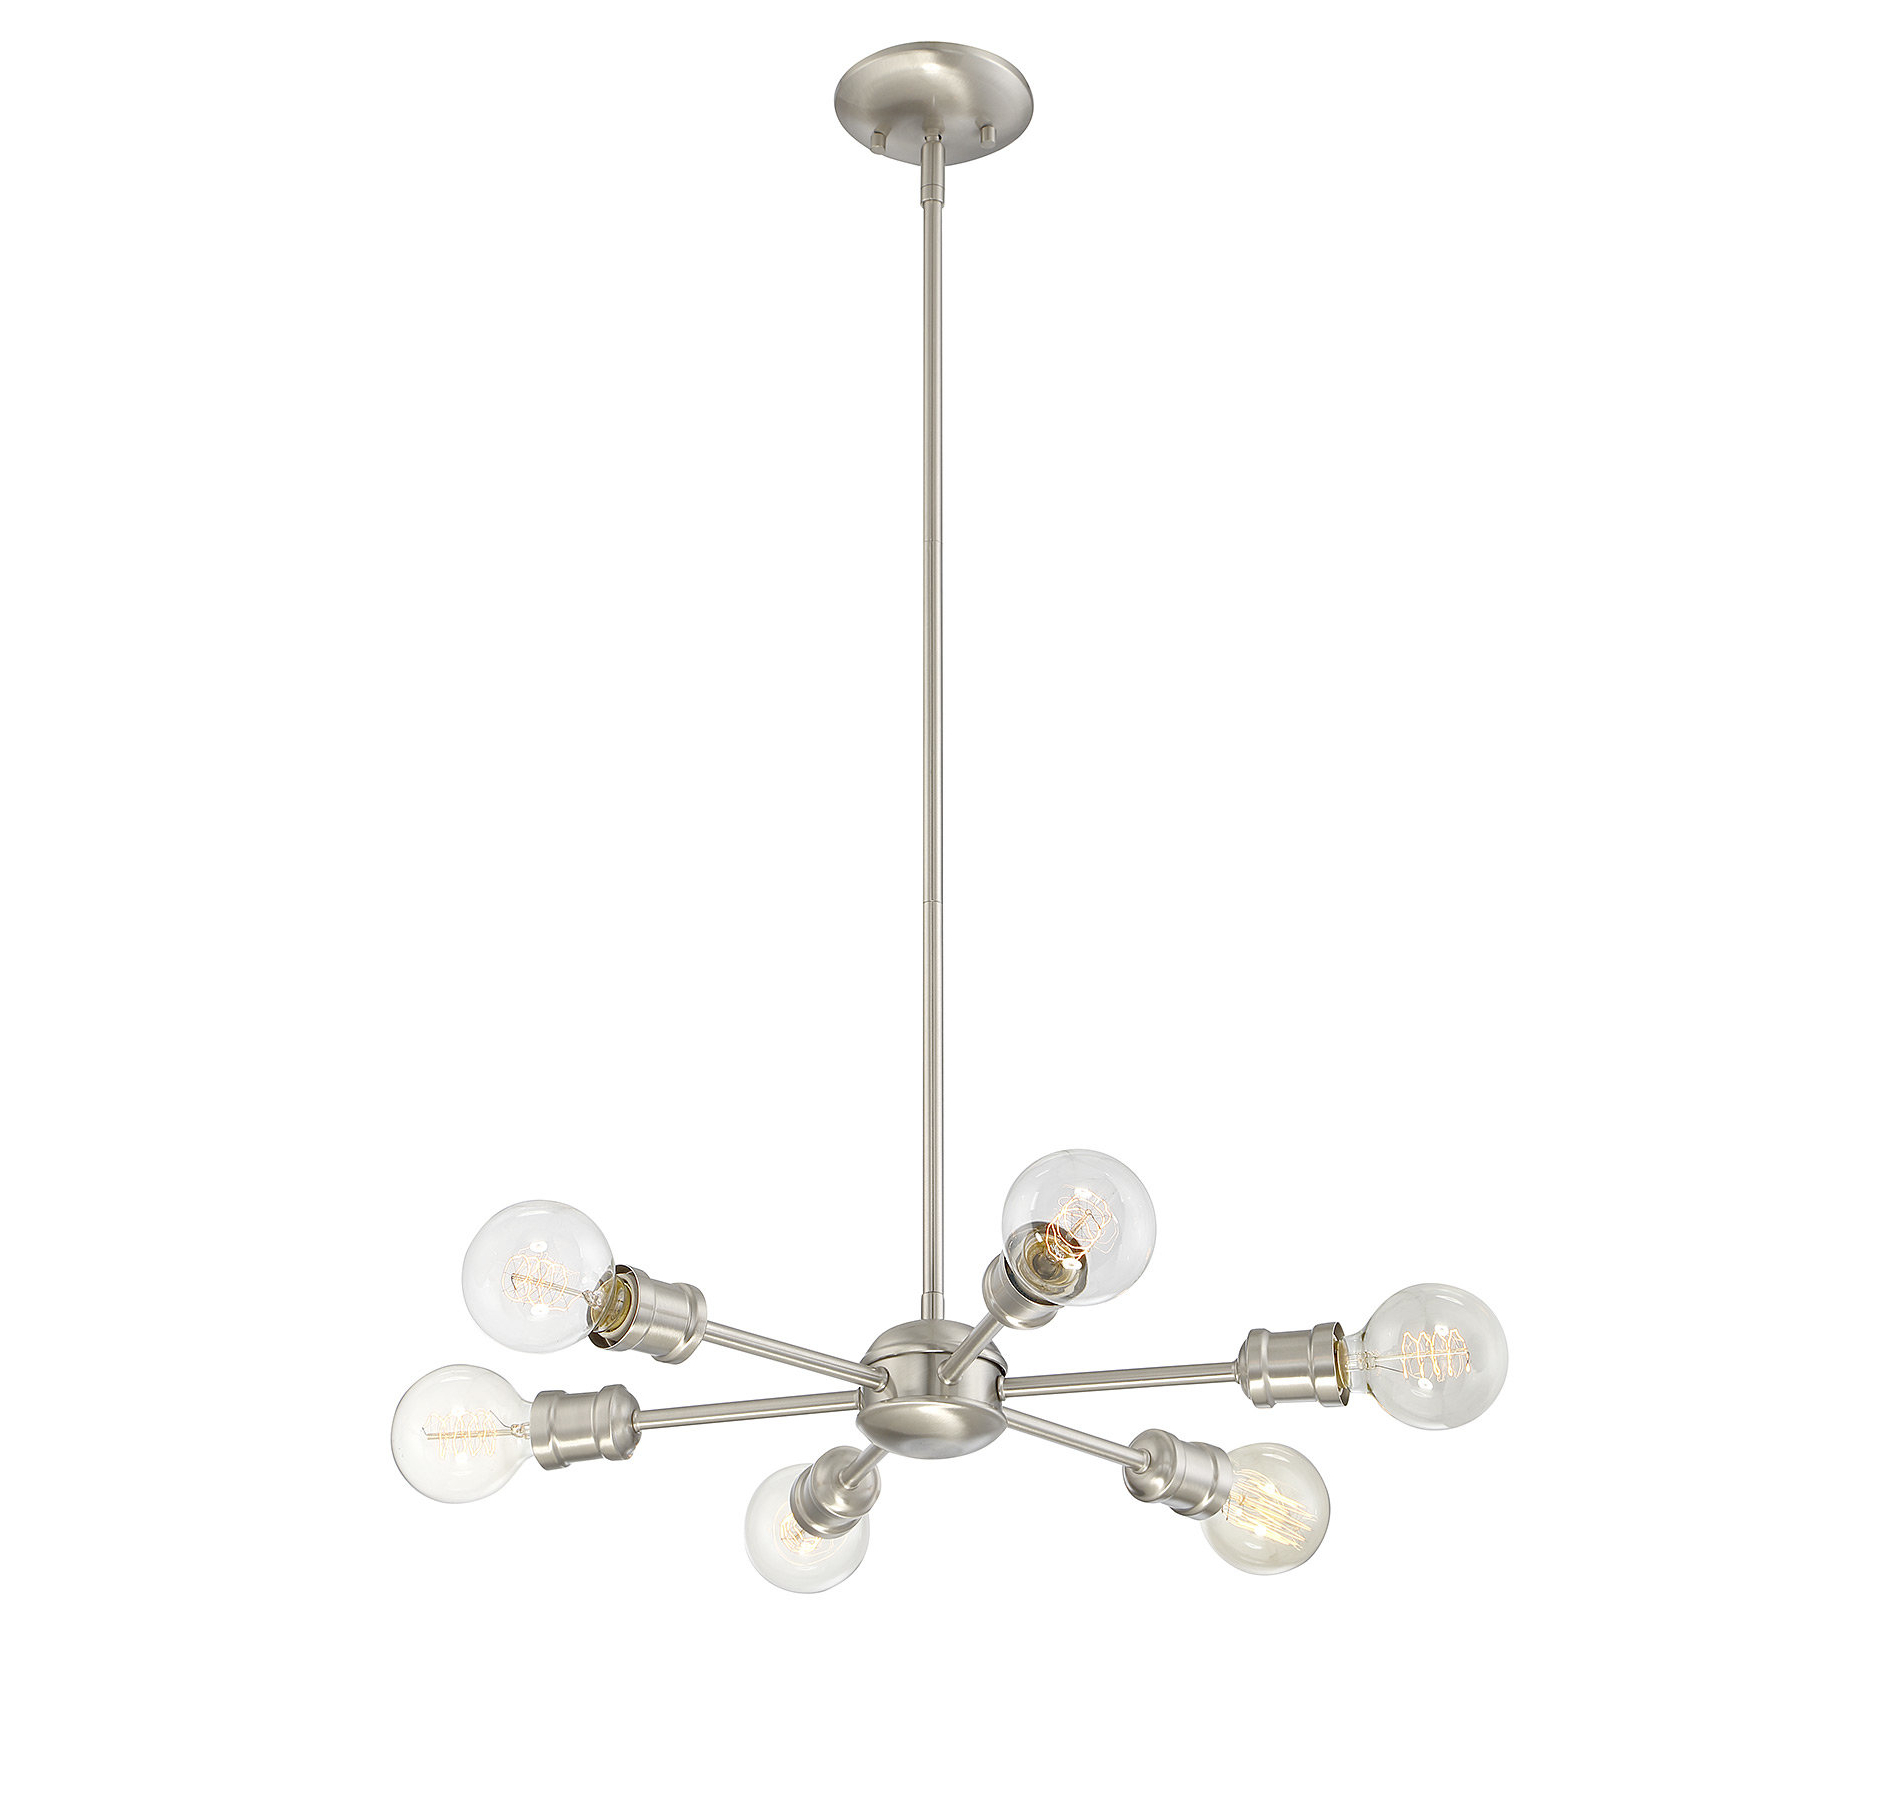 Bautista 6 Light Kitchen Island Bulb Pendants Throughout Widely Used Bautista 6 Light Sputnik Chandelier (View 5 of 20)